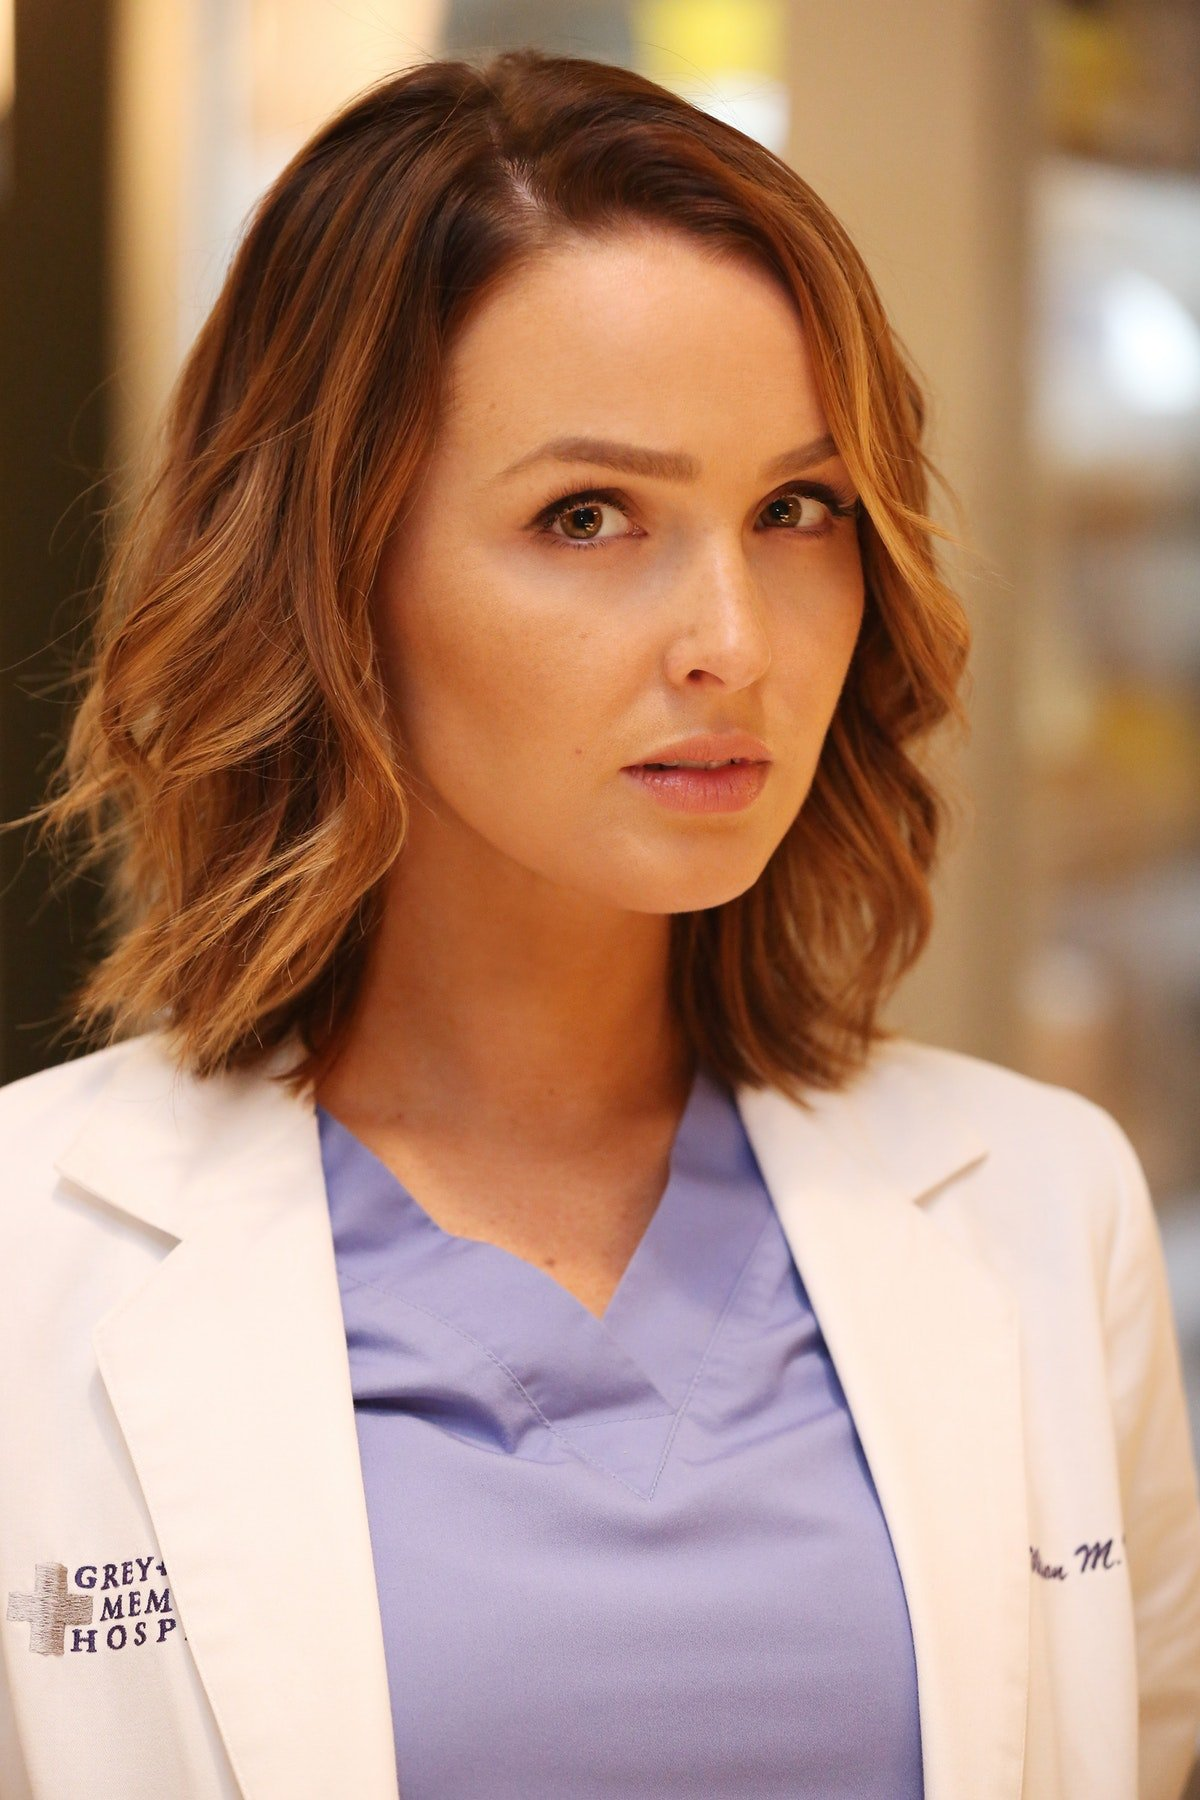 Jo Is Going To Make A Big Decision In The 'Grey's Anatomy' Season Premiere